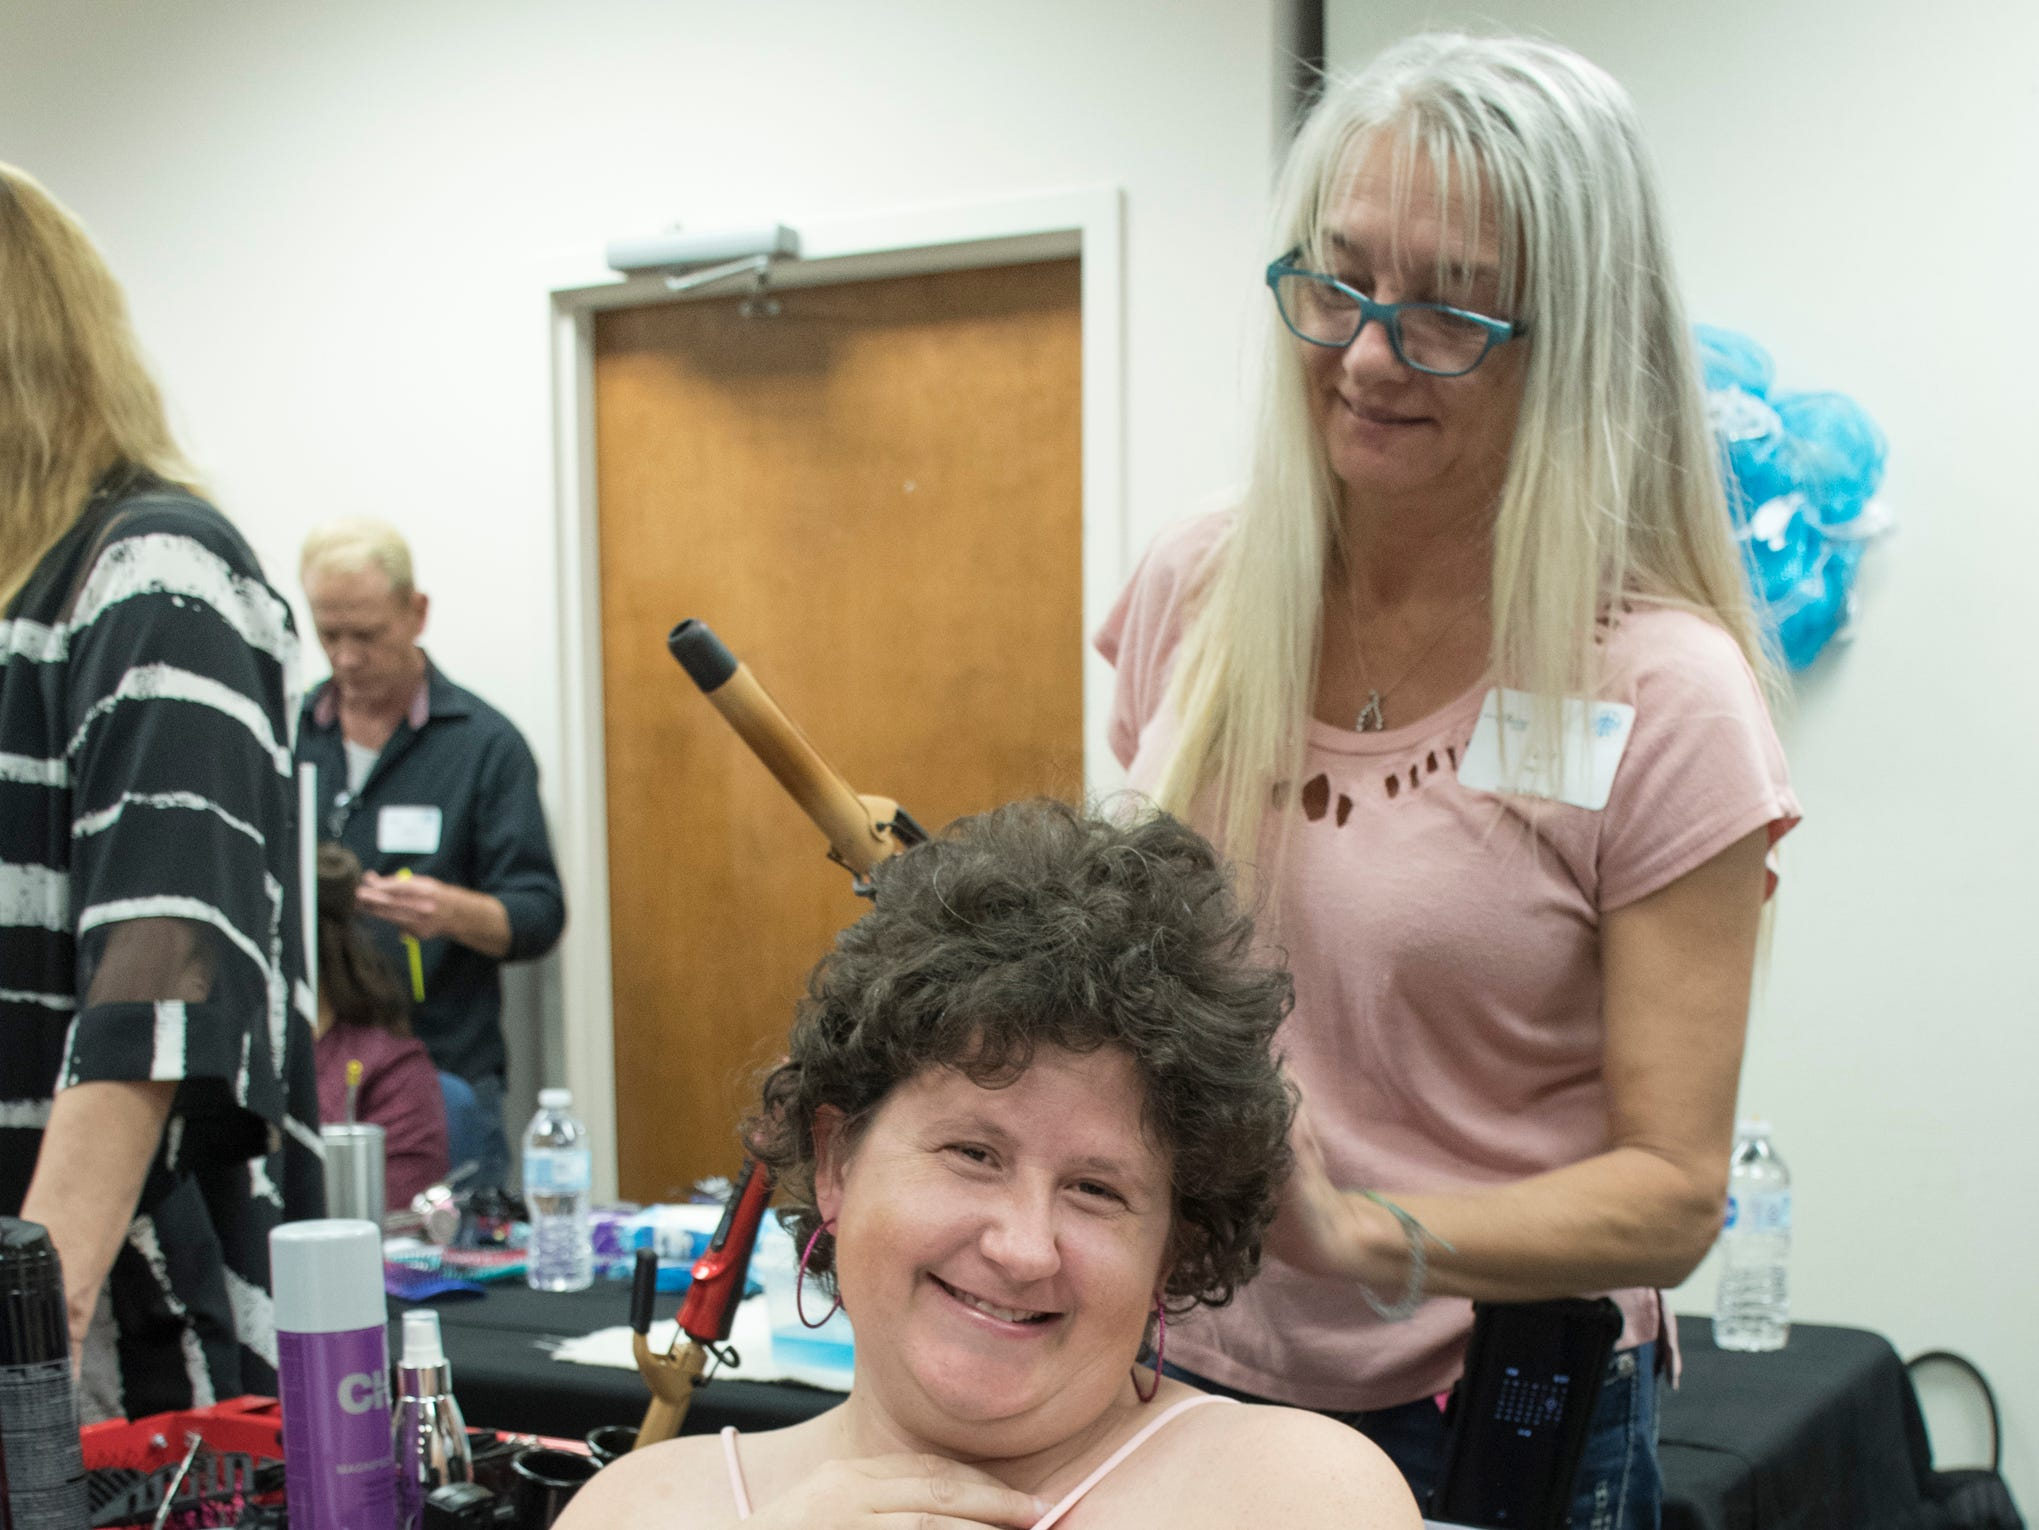 Kelly Swier has her hair styled at the beginning of the Night to Shine prom for people with special needs sponsored by the Tim Tebow Foundation at Perdido Bay United Methodist Church in Pensacola on Friday, February 8, 2019.